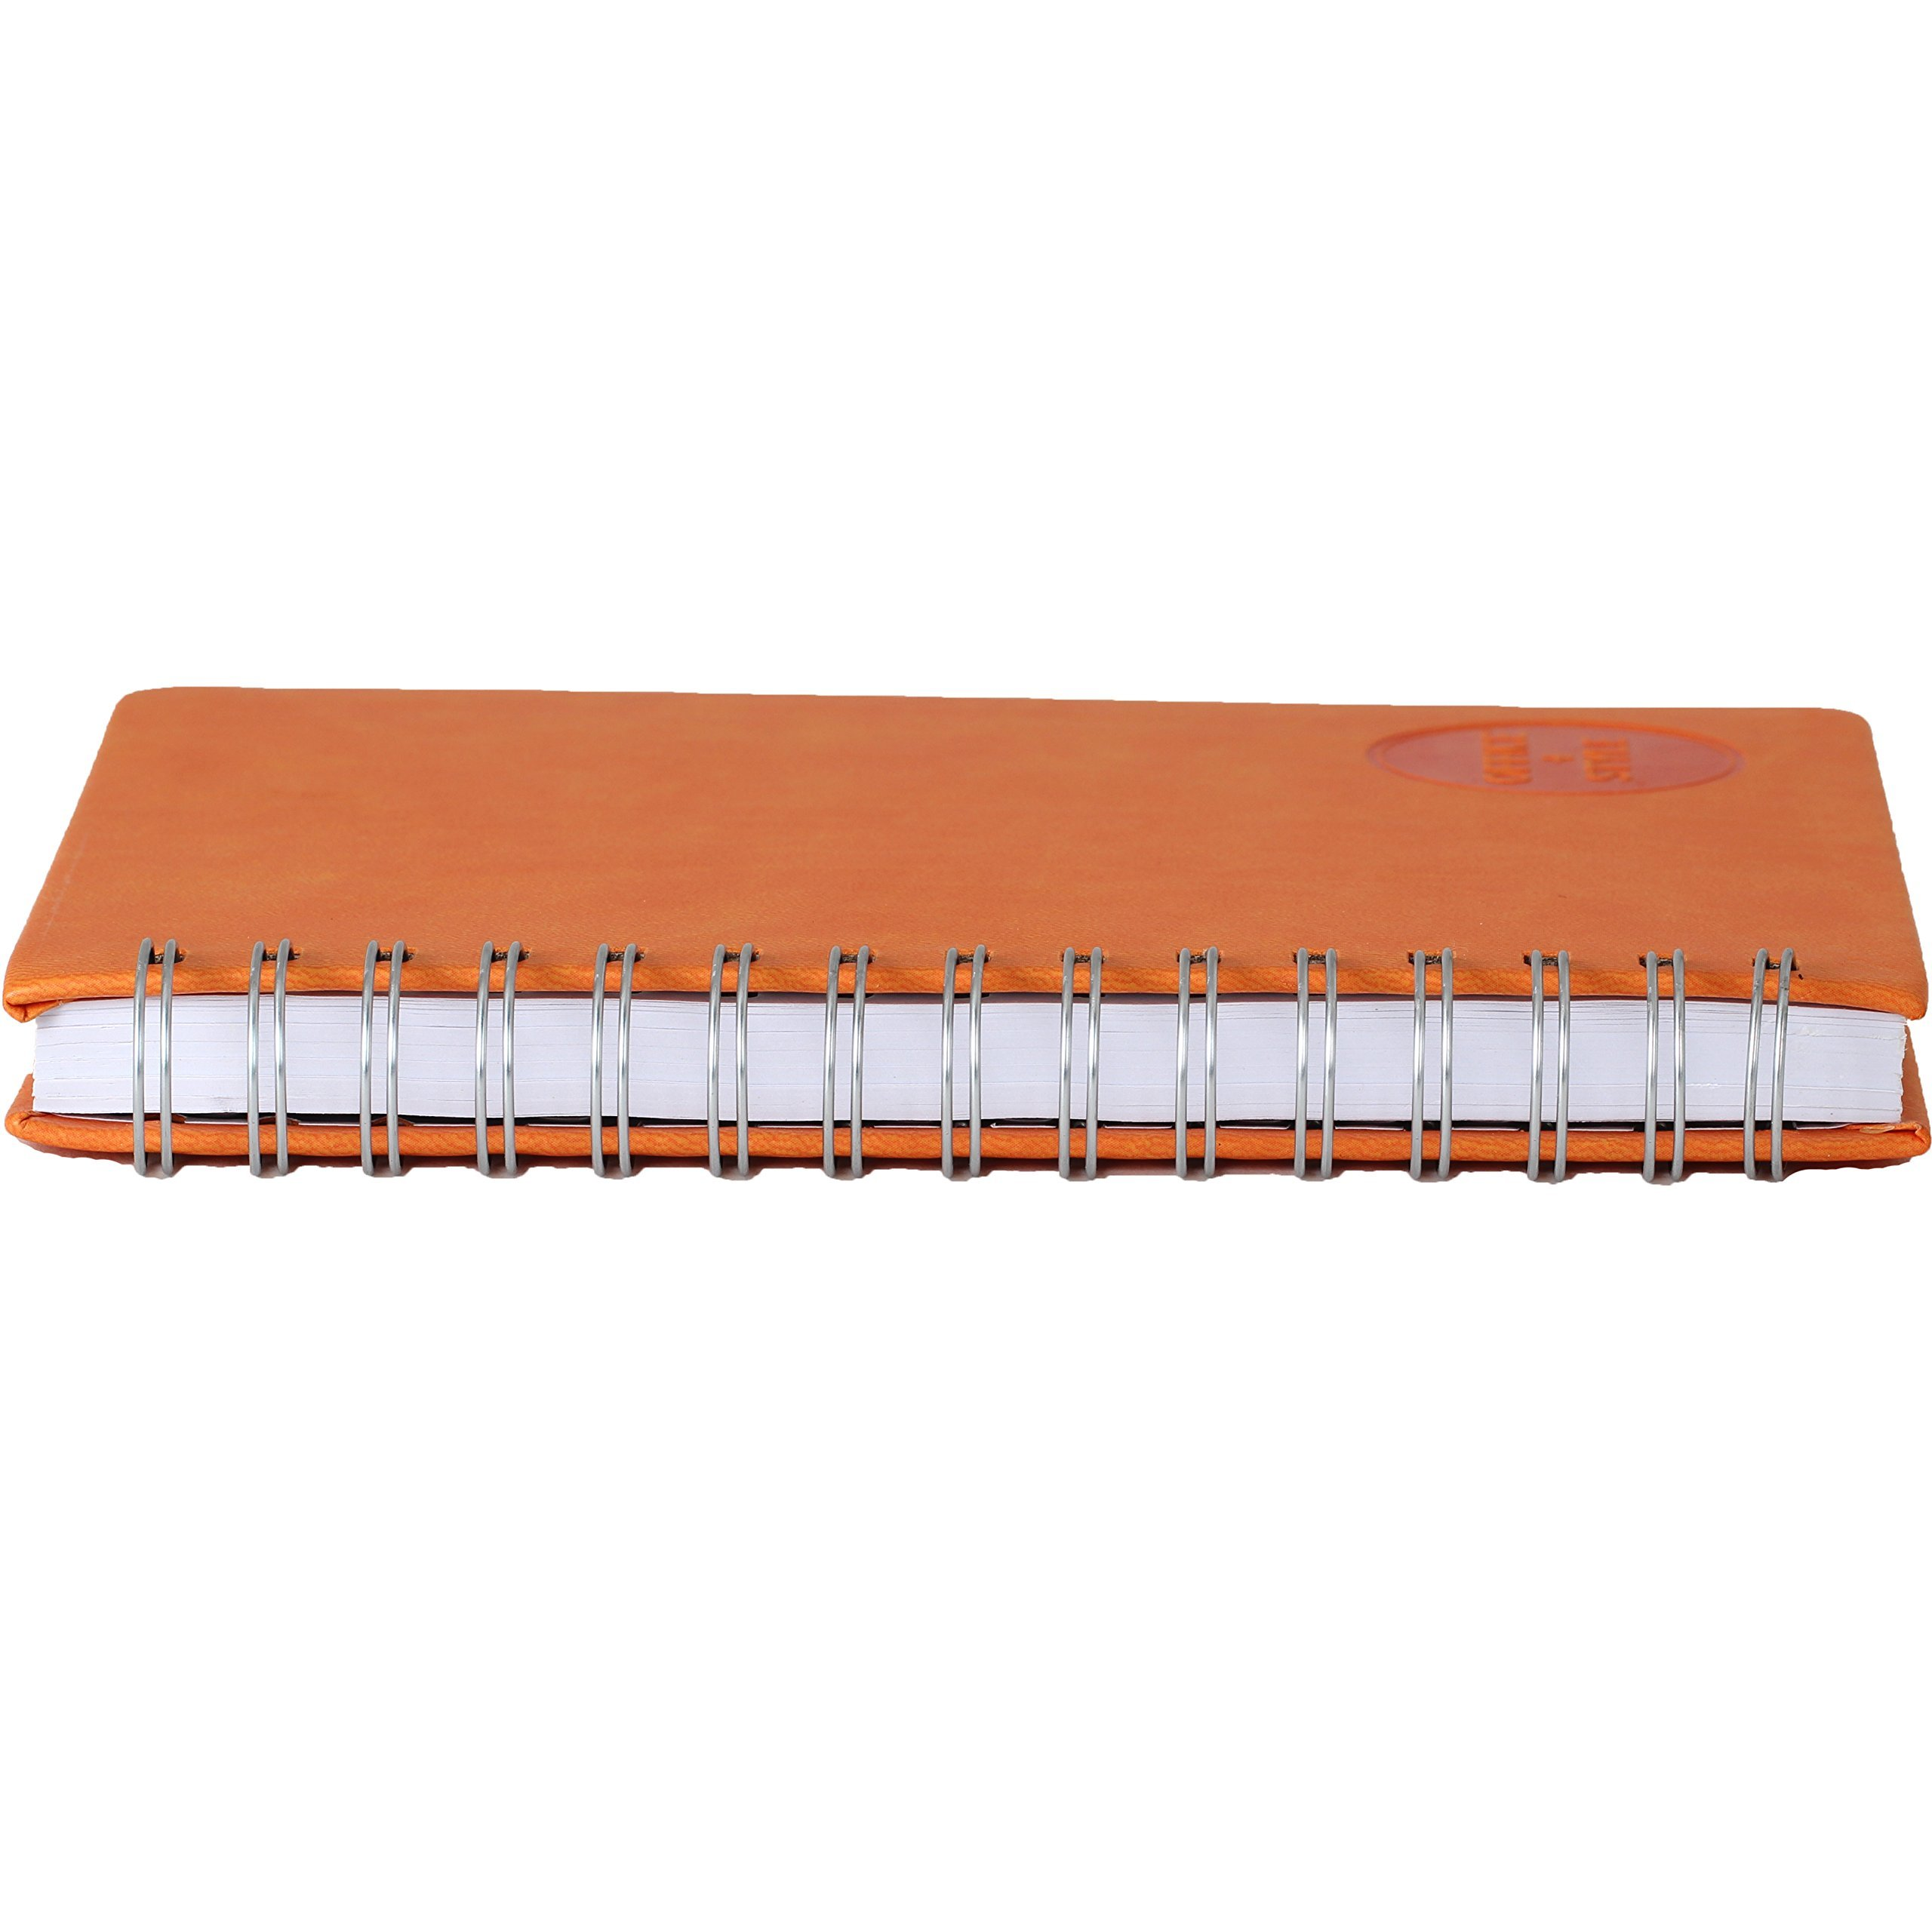 Office+Style PU Personal Graph Notebook with Double Spiral Binding, 96 Sheets, Orange (OS3-NBORG) by Office+Style (Image #4)